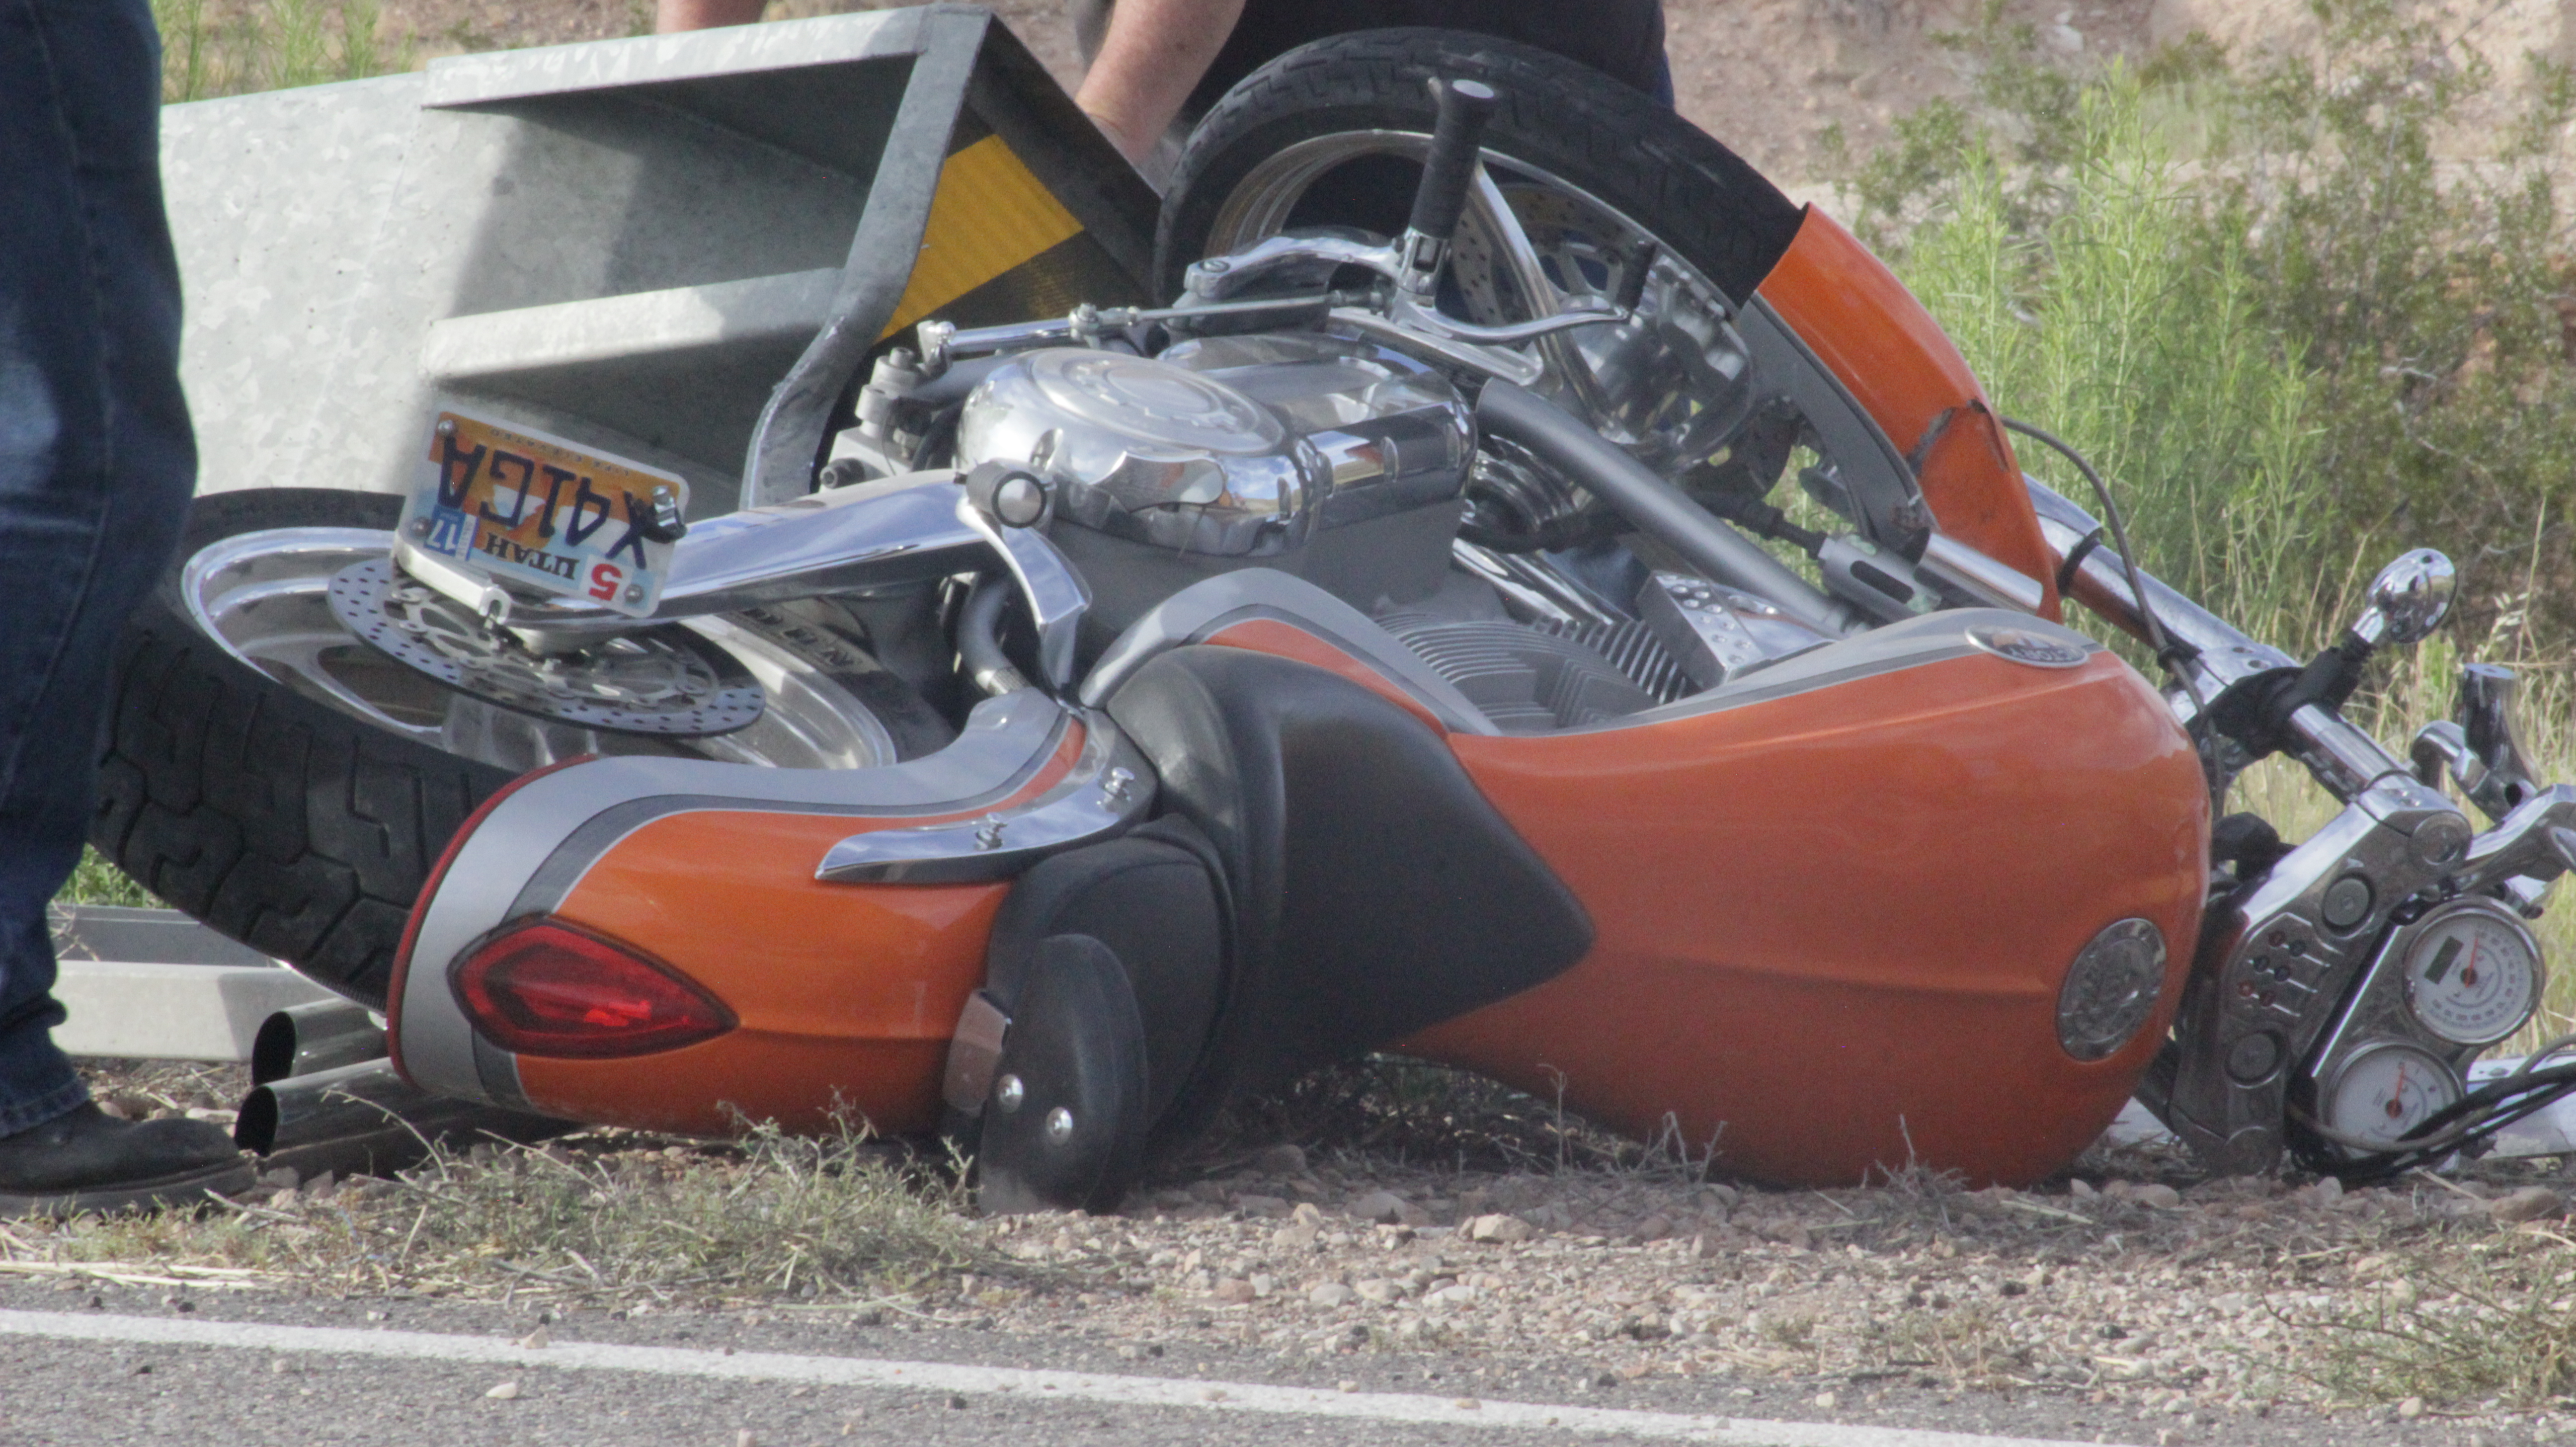 A motorcyclist lost control of her vehicle on state Route 59 and sustained minor injuries after being ejected, Hurricane, Utah, June 18 | Photo by Don Gilman, St. George News